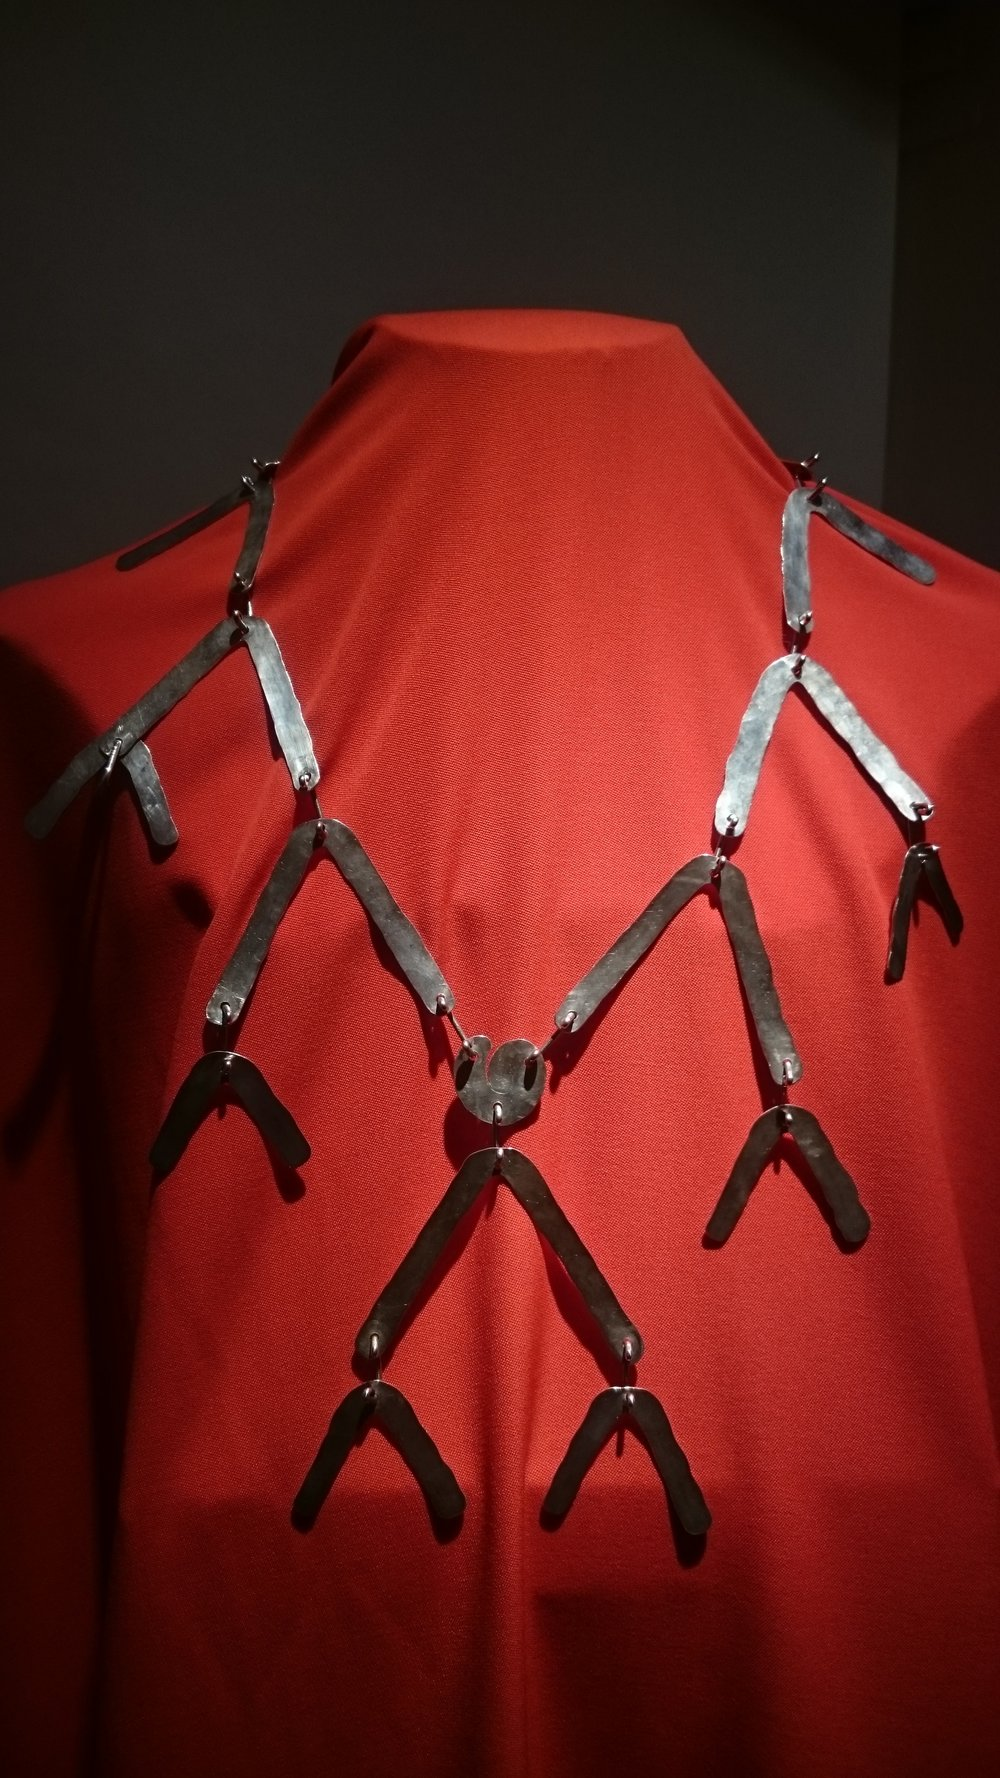 Connected components fit over the body in a Calder necklace